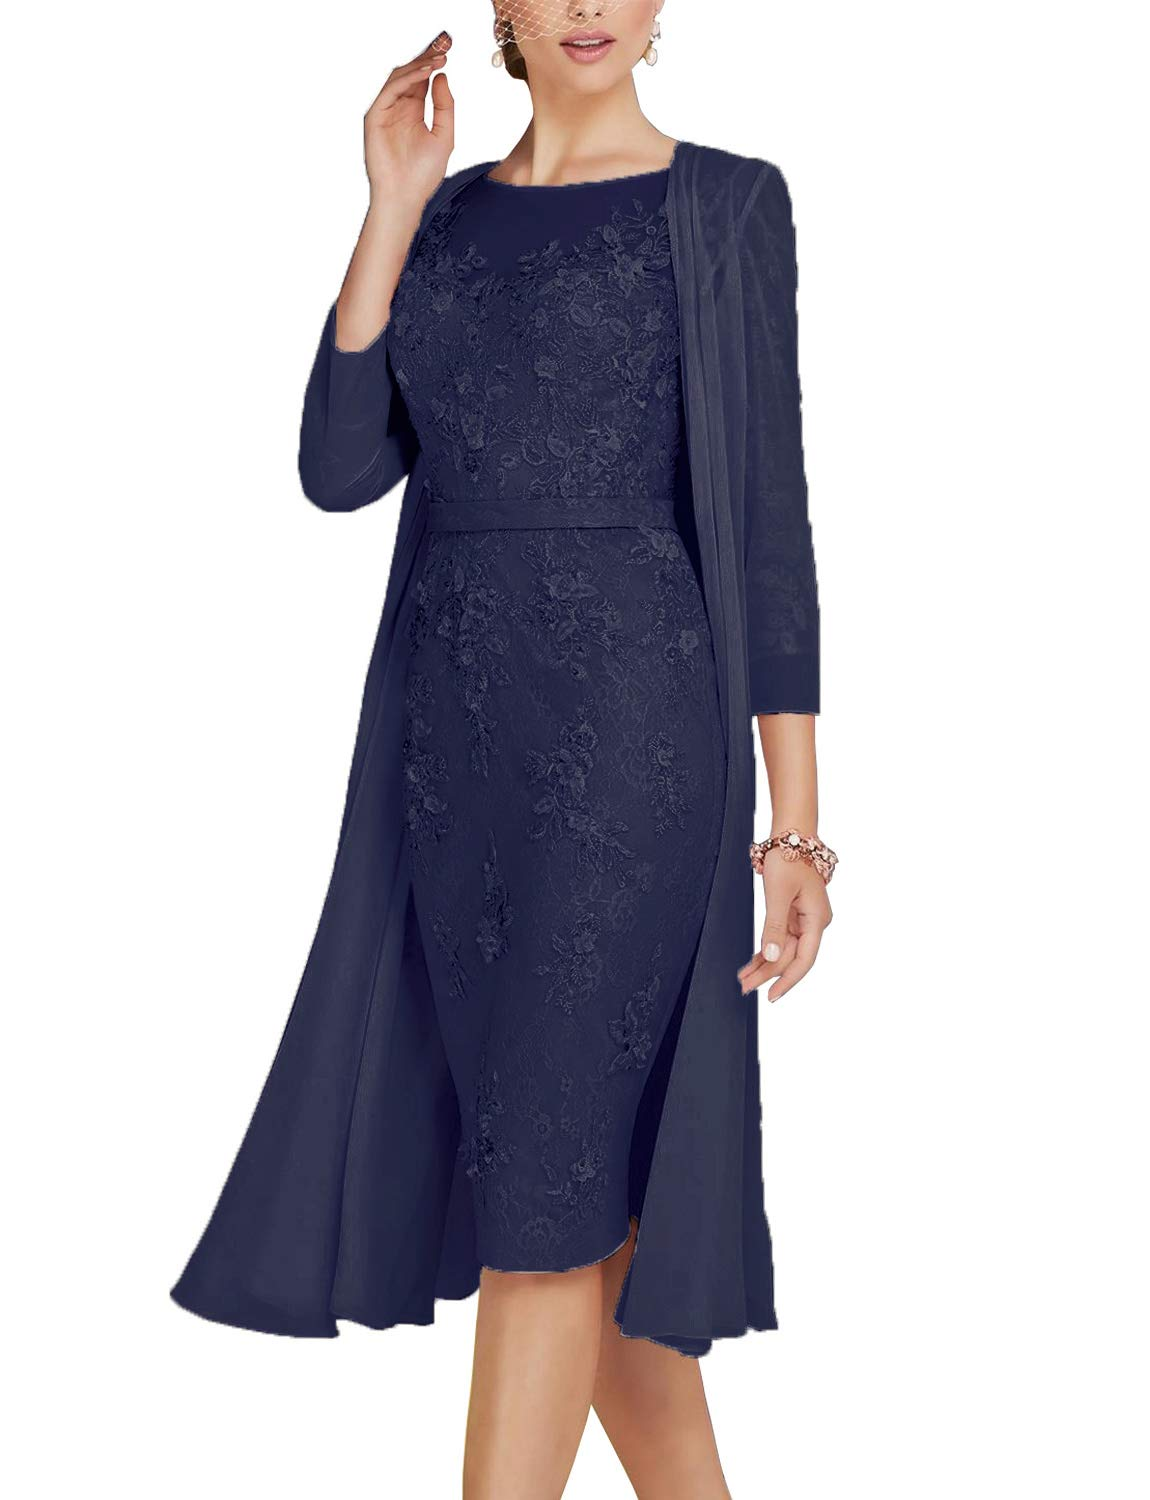 Casual Navy Blue Mother of the Bride Dress